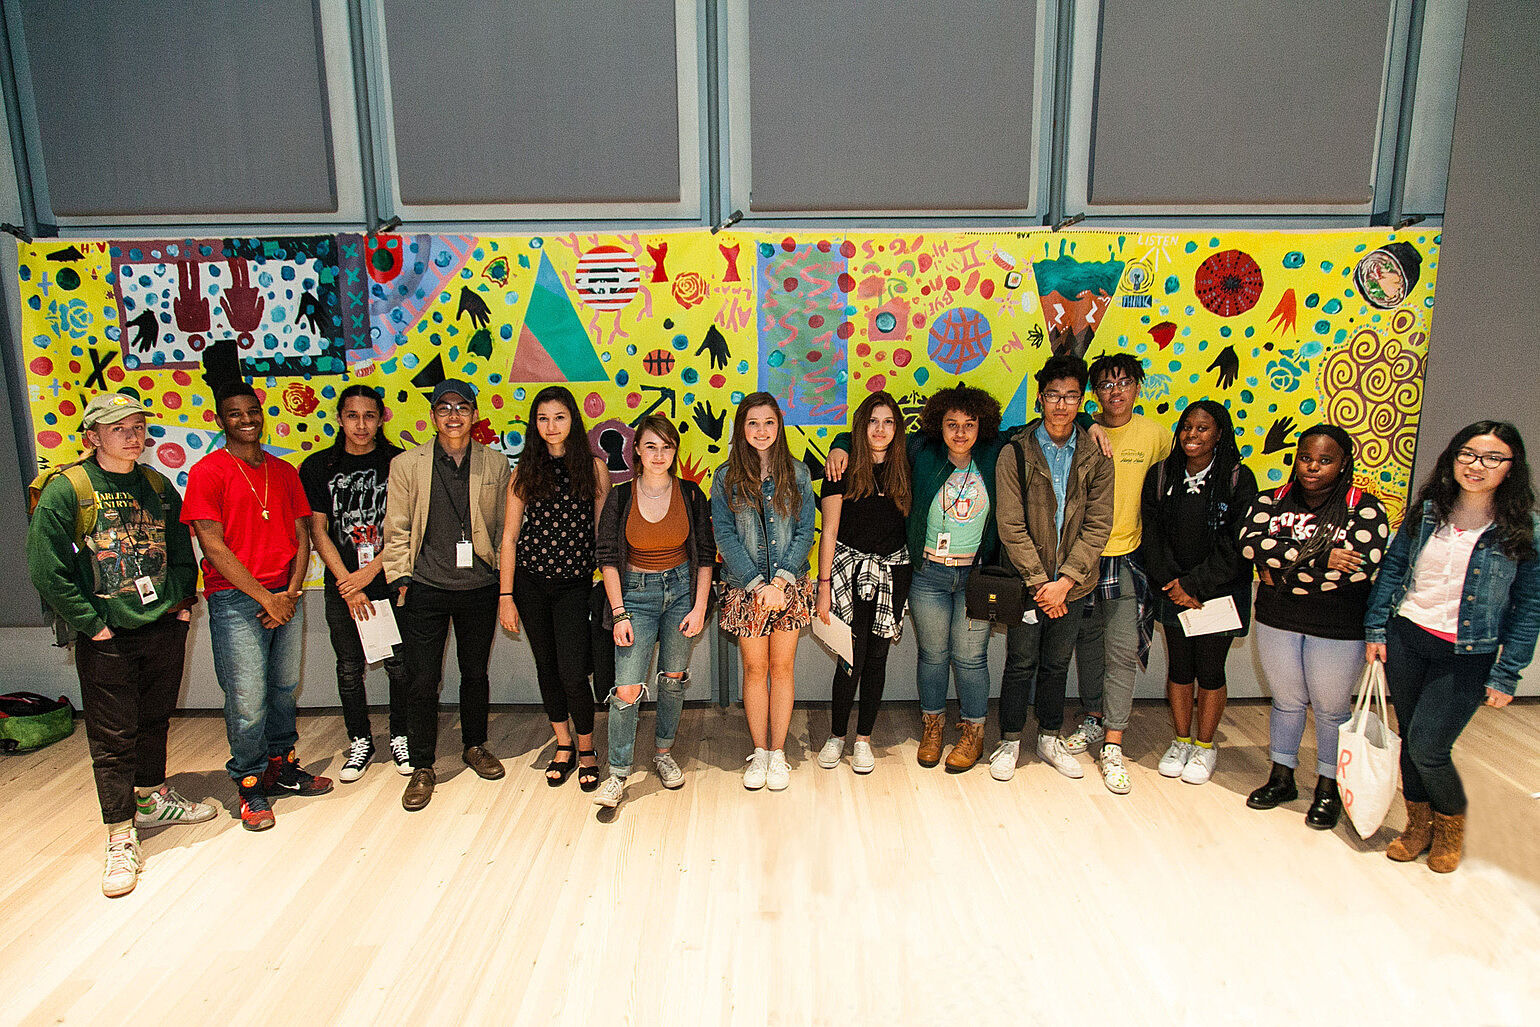 YI Artists pose with collaborative painting made with artist Nina Chanel Abney. Photograph by Andrew Kist.